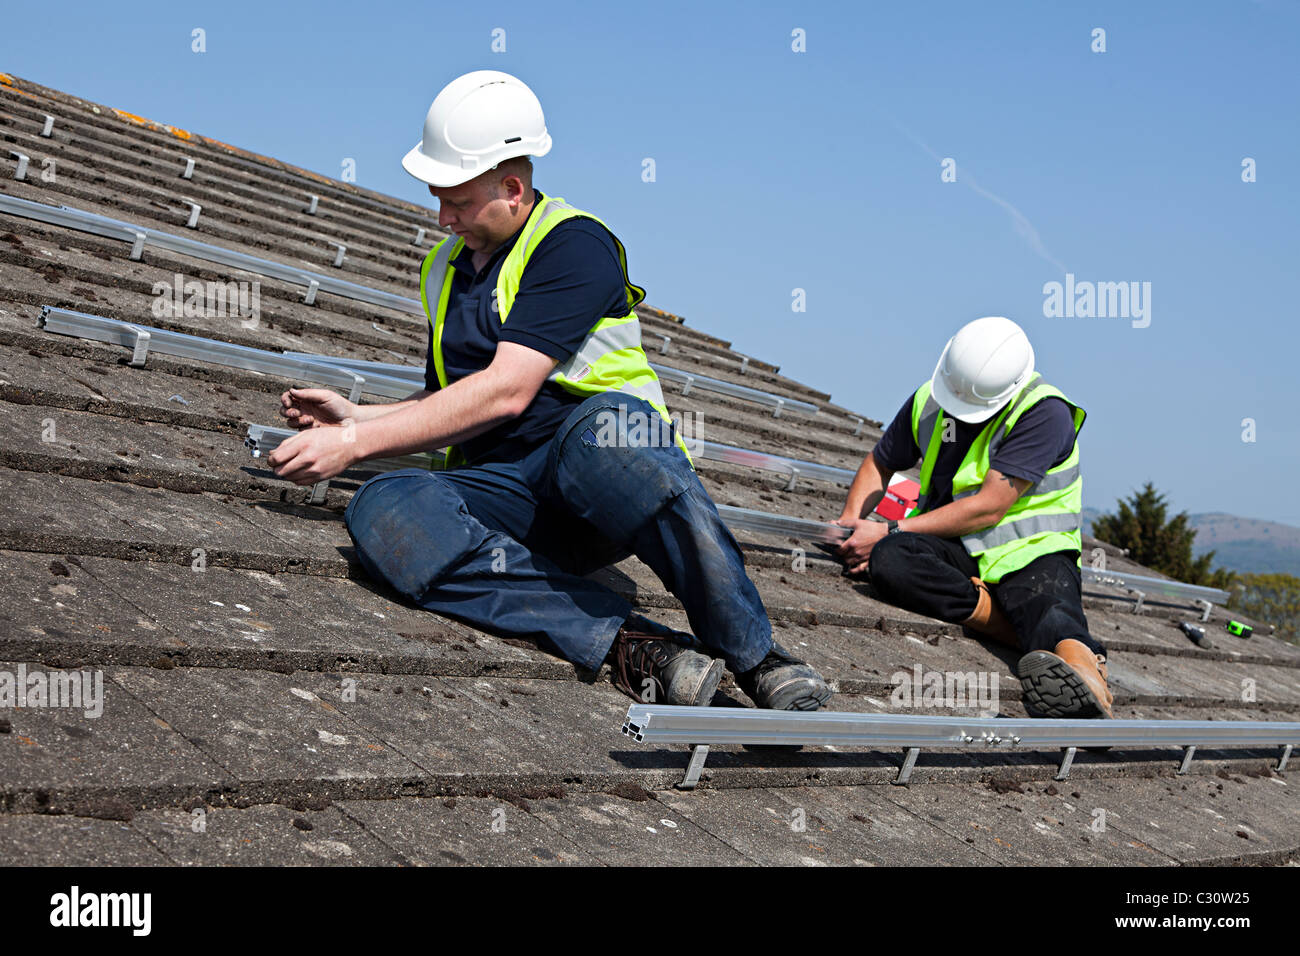 Two men fitting rails for solar pv panel attachment to house roof Wales UK - Stock Image